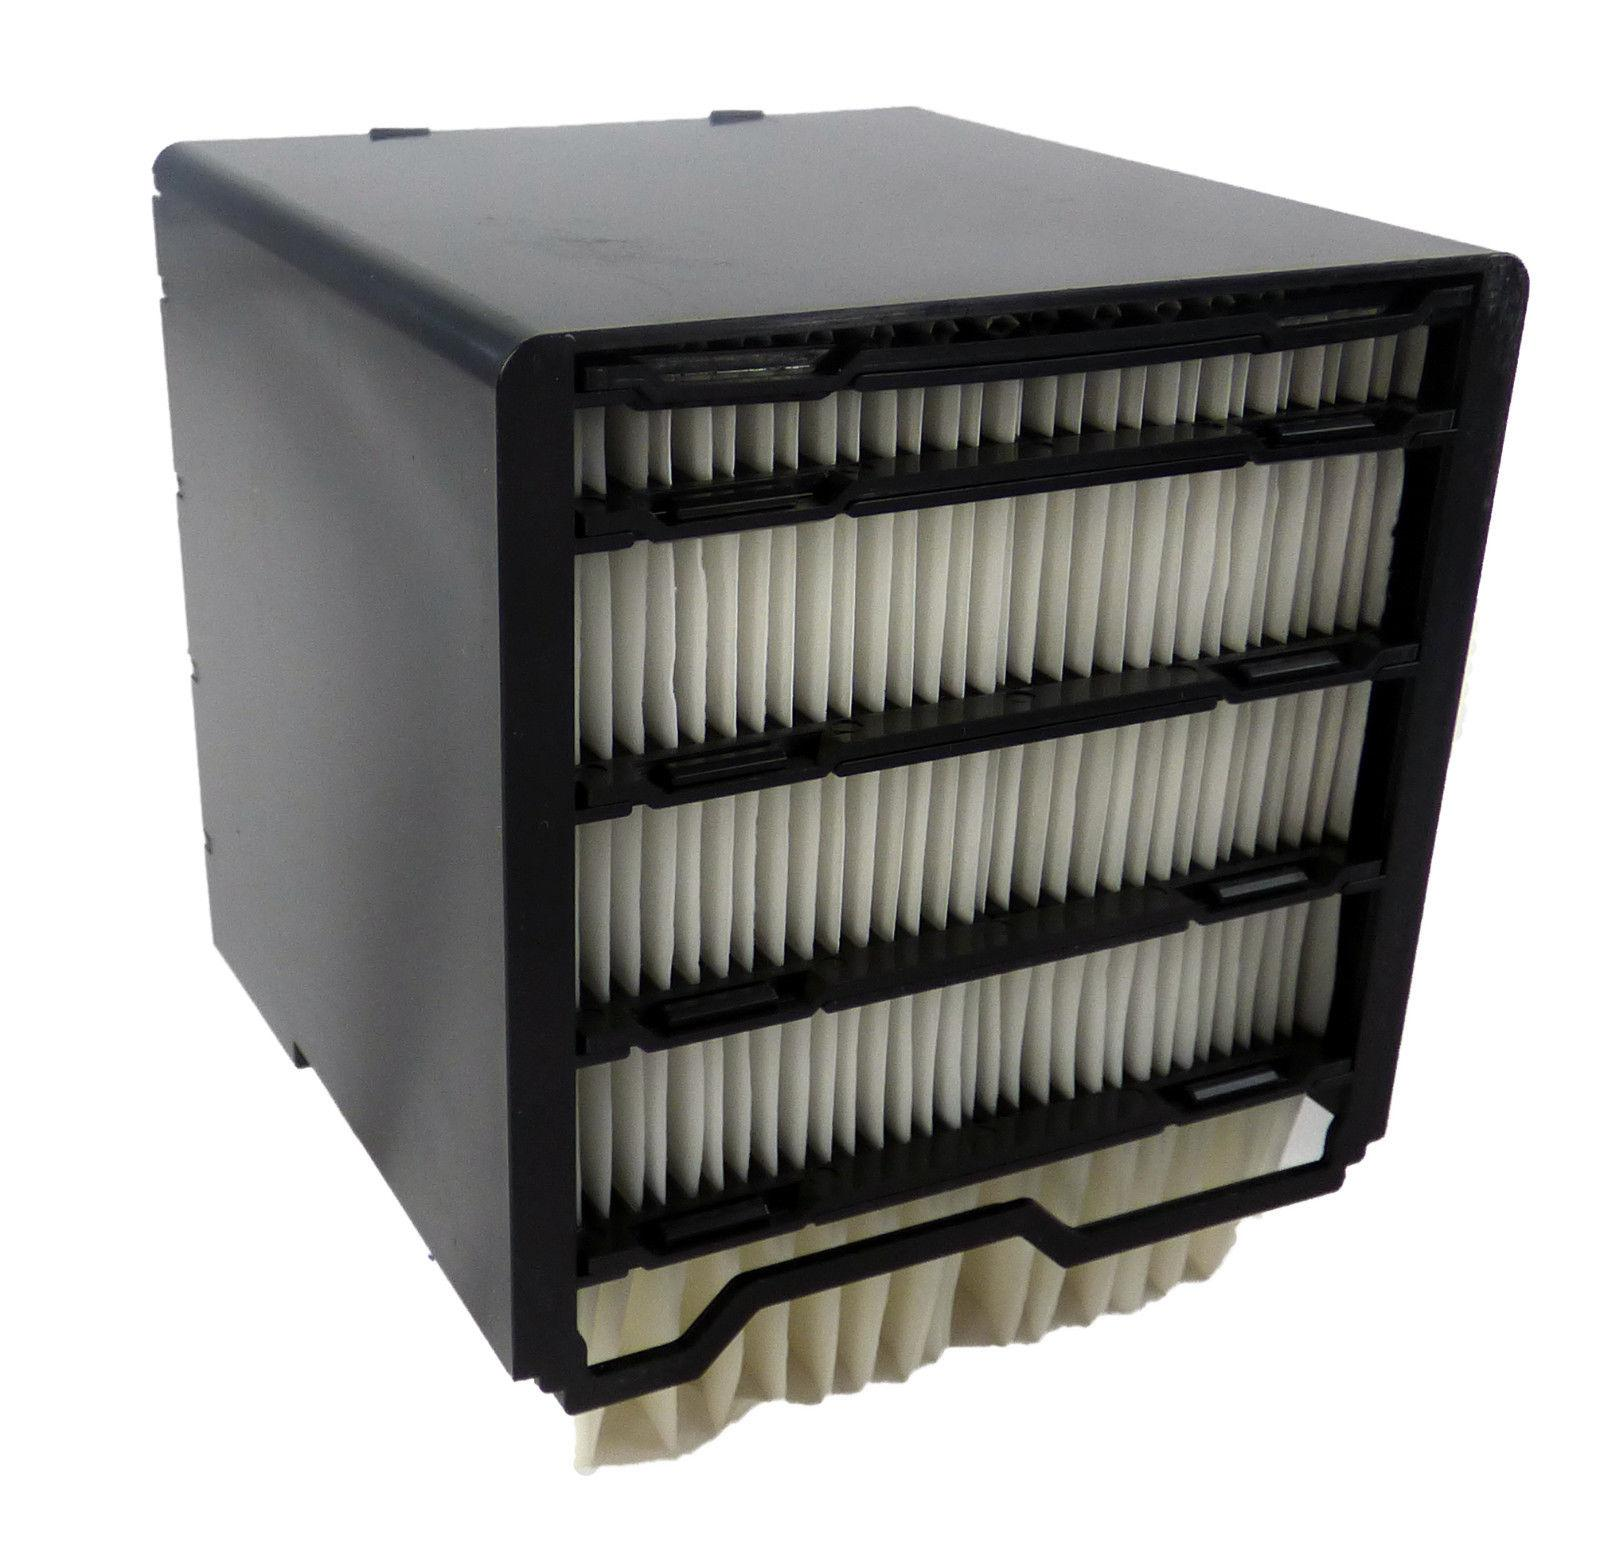 Personal Air Conditioner Portable Cooler Evaporative